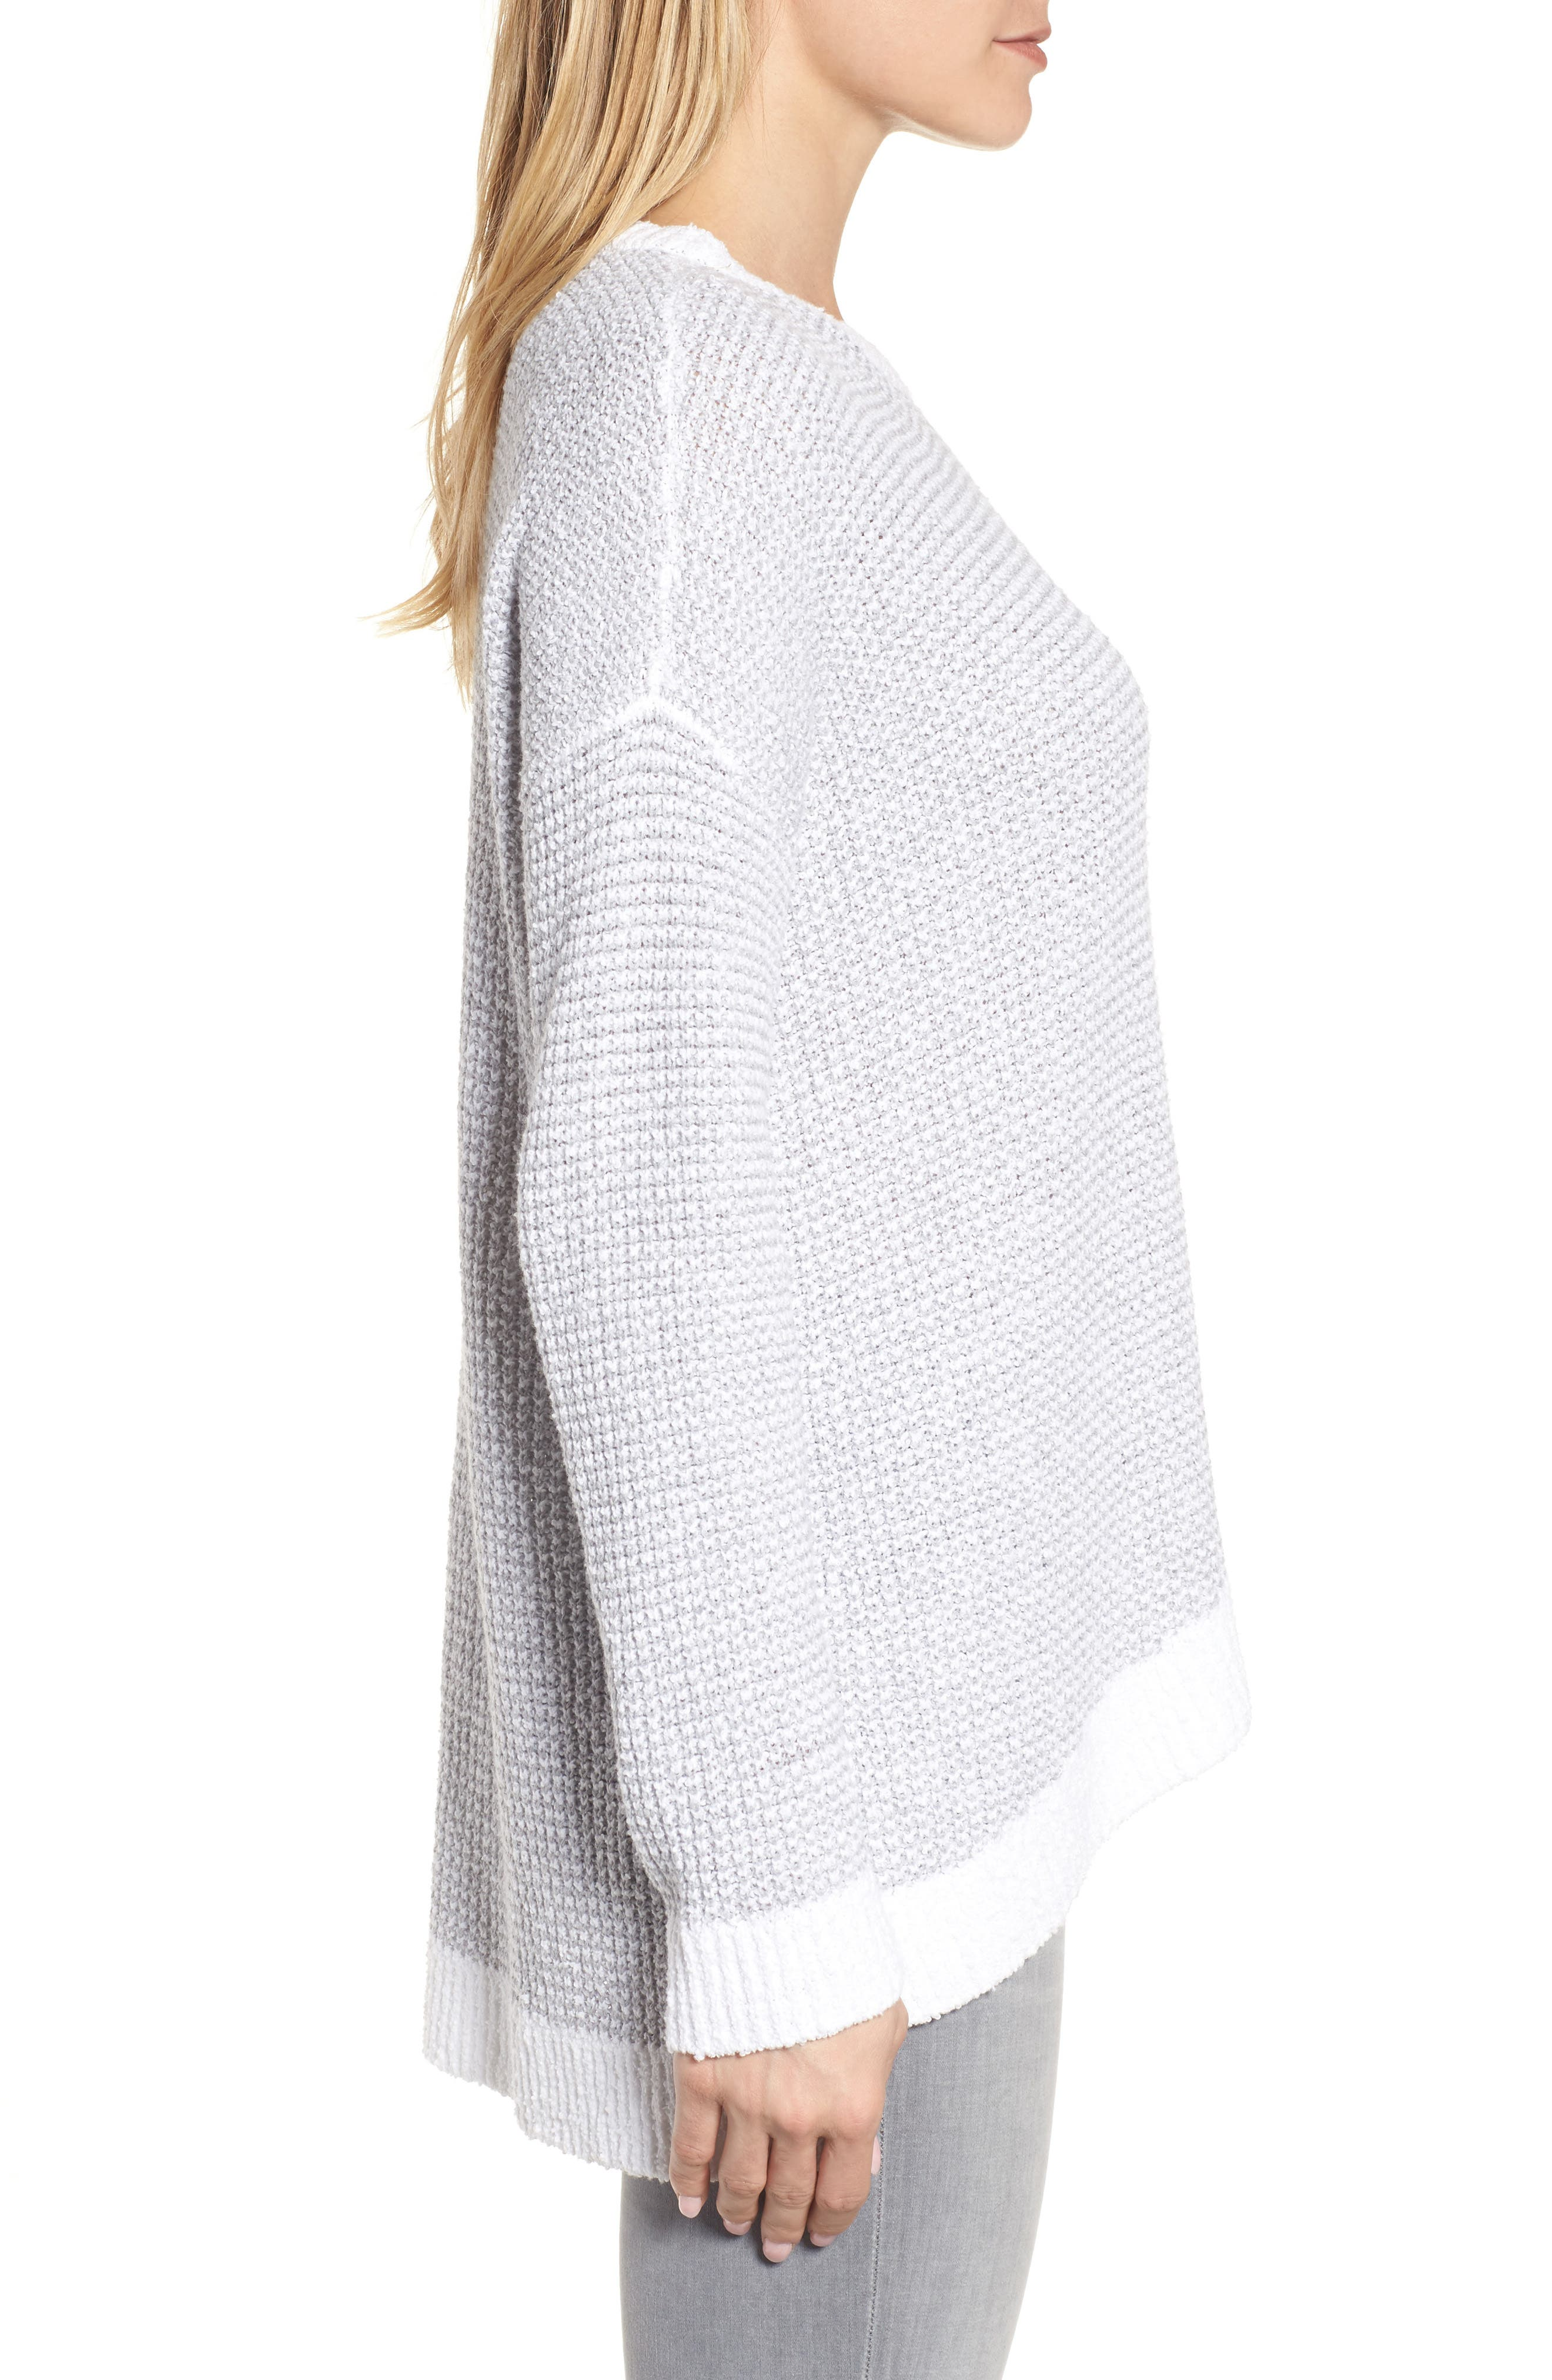 Waffled Organic Cotton Sweater,                             Alternate thumbnail 3, color,                             022